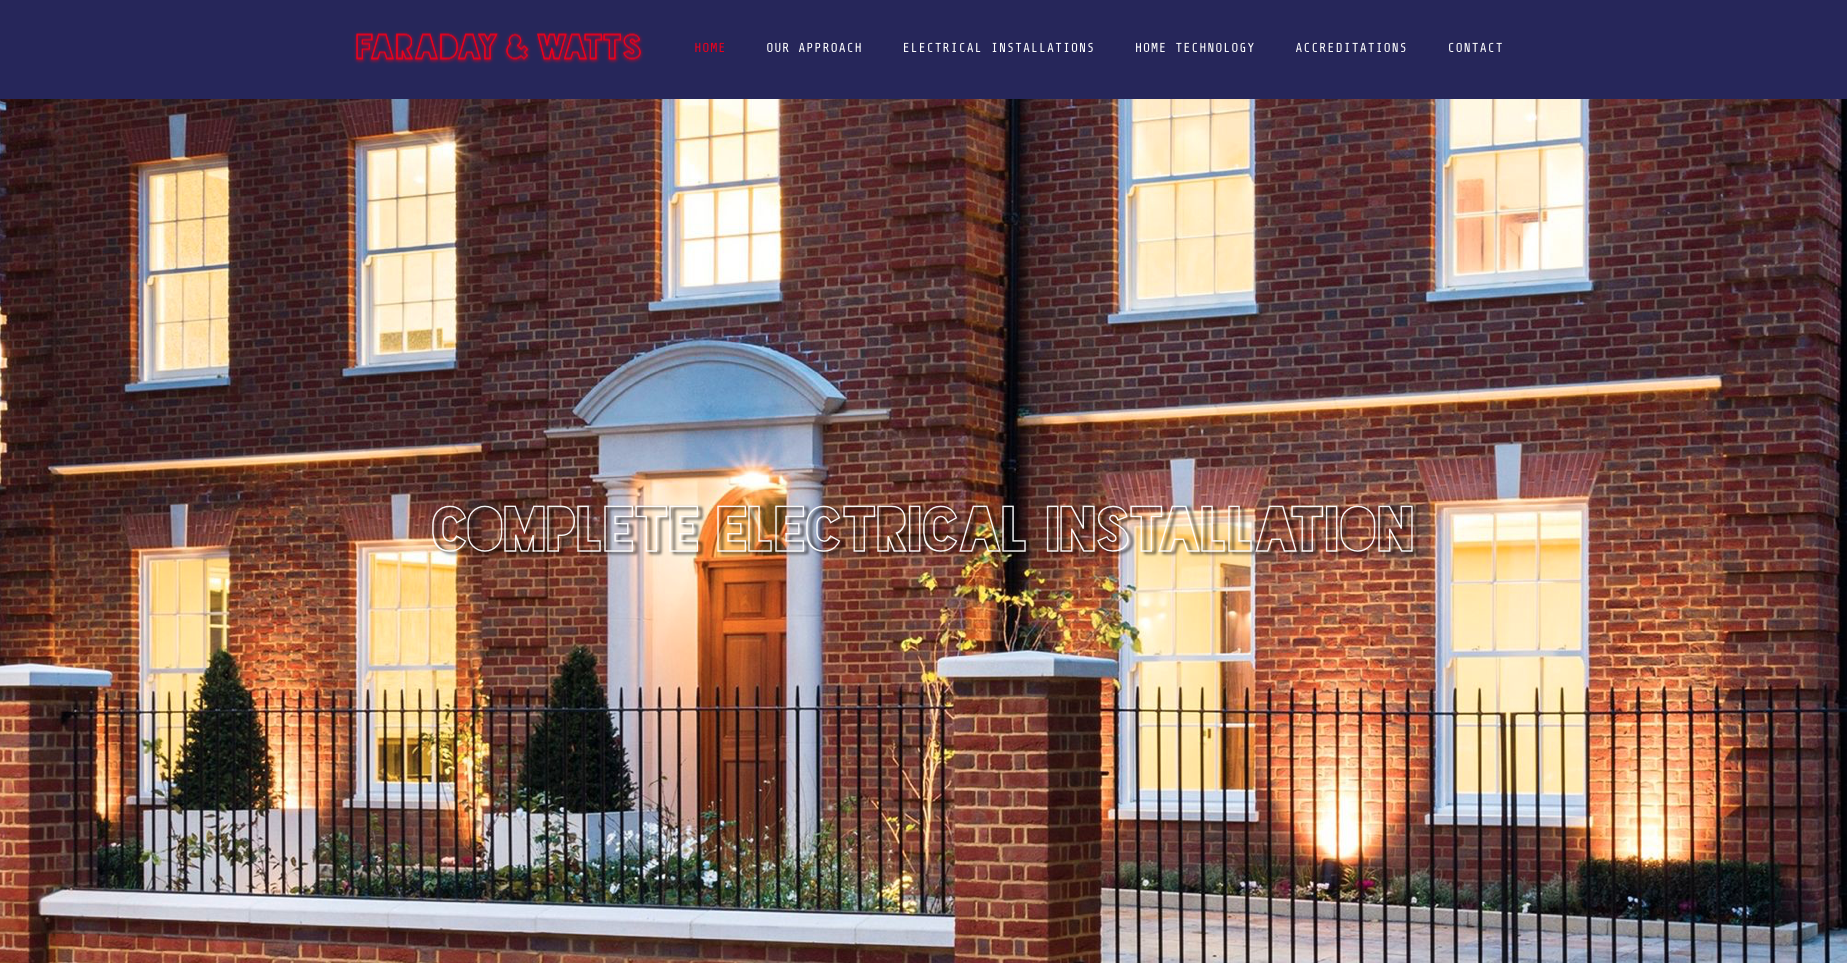 Home page from Faraday and watts website design